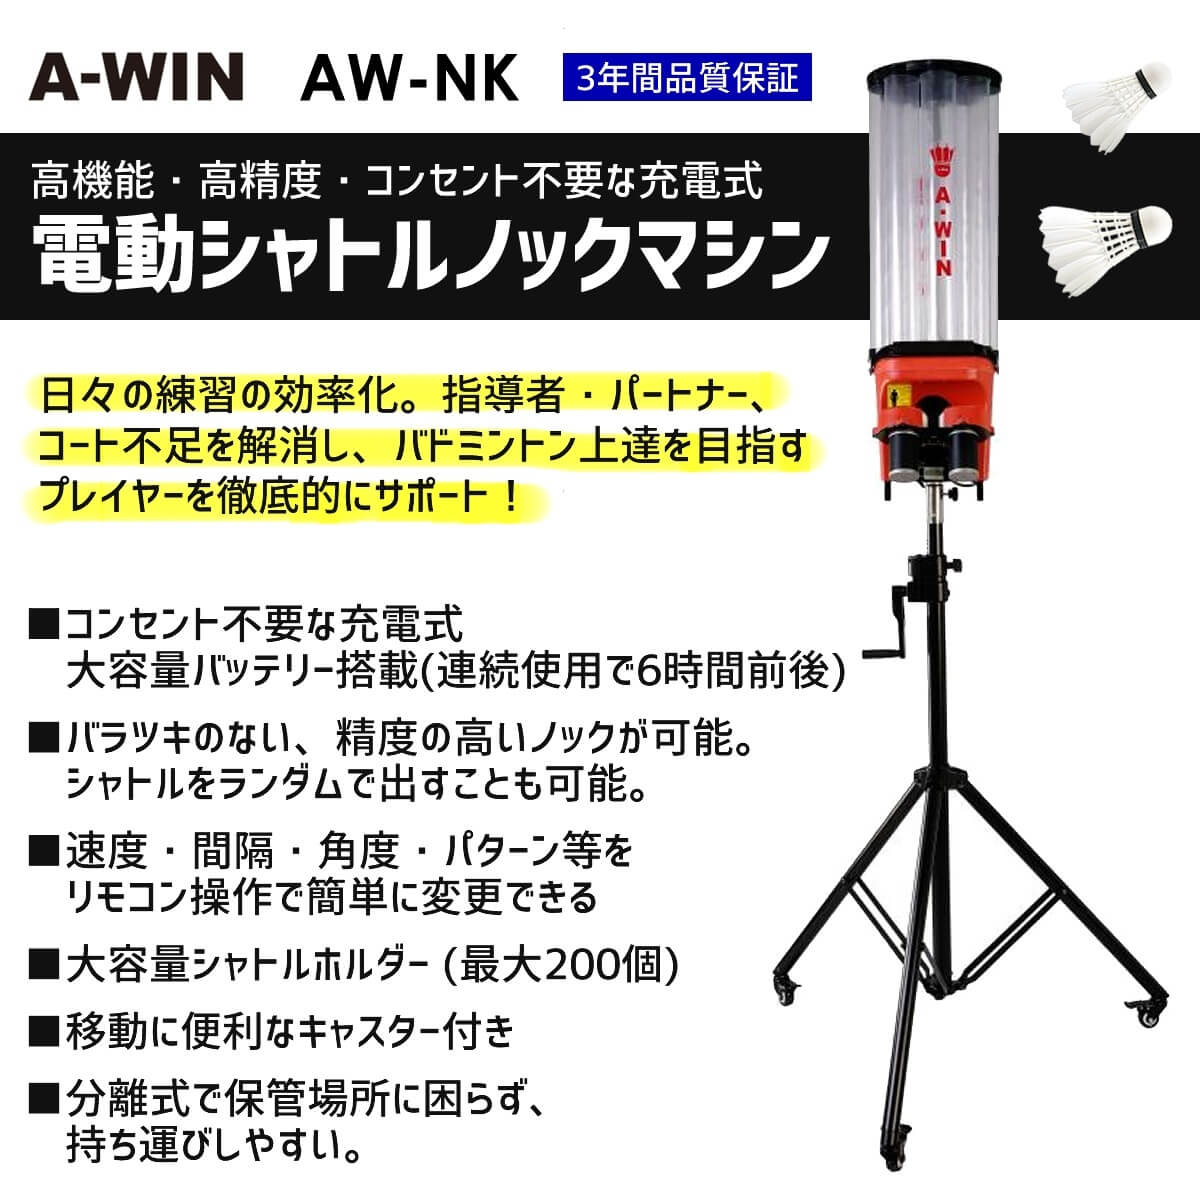 A-WIN AW-NK 電動シャトルノックマシン 高機能・高精度・充電式 バドミントン 練習 アーウィン【受注生産】